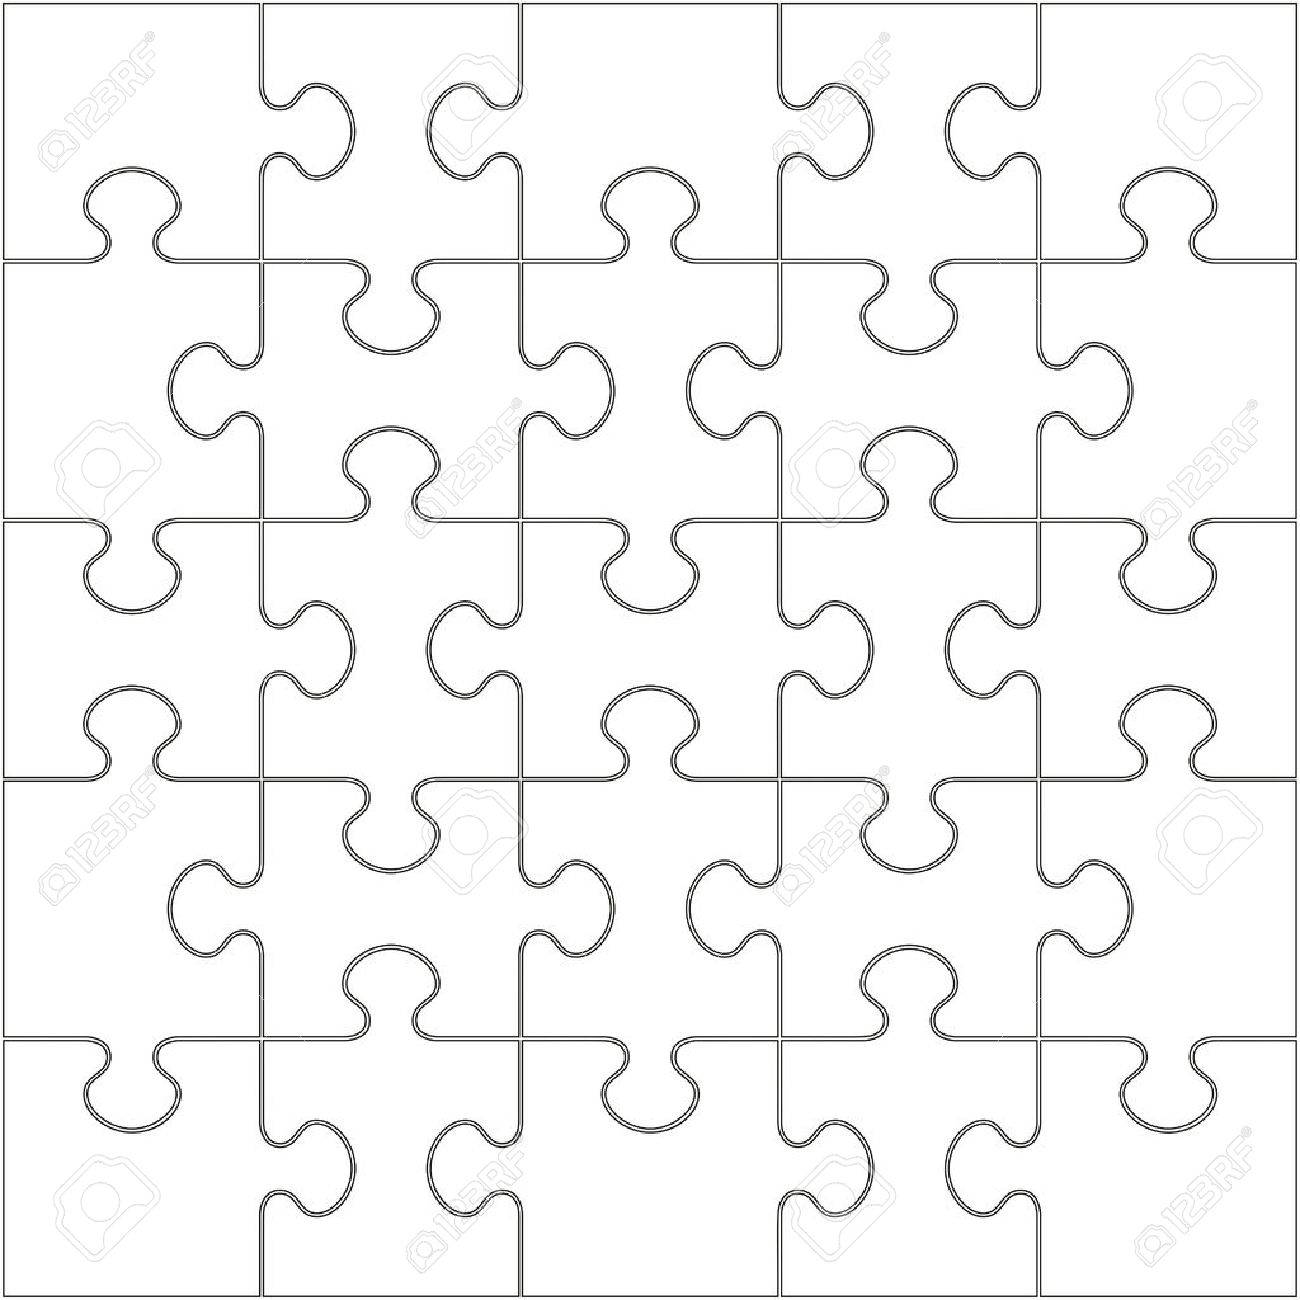 25 white puzzle pieces arranged in a square jigsaw vector